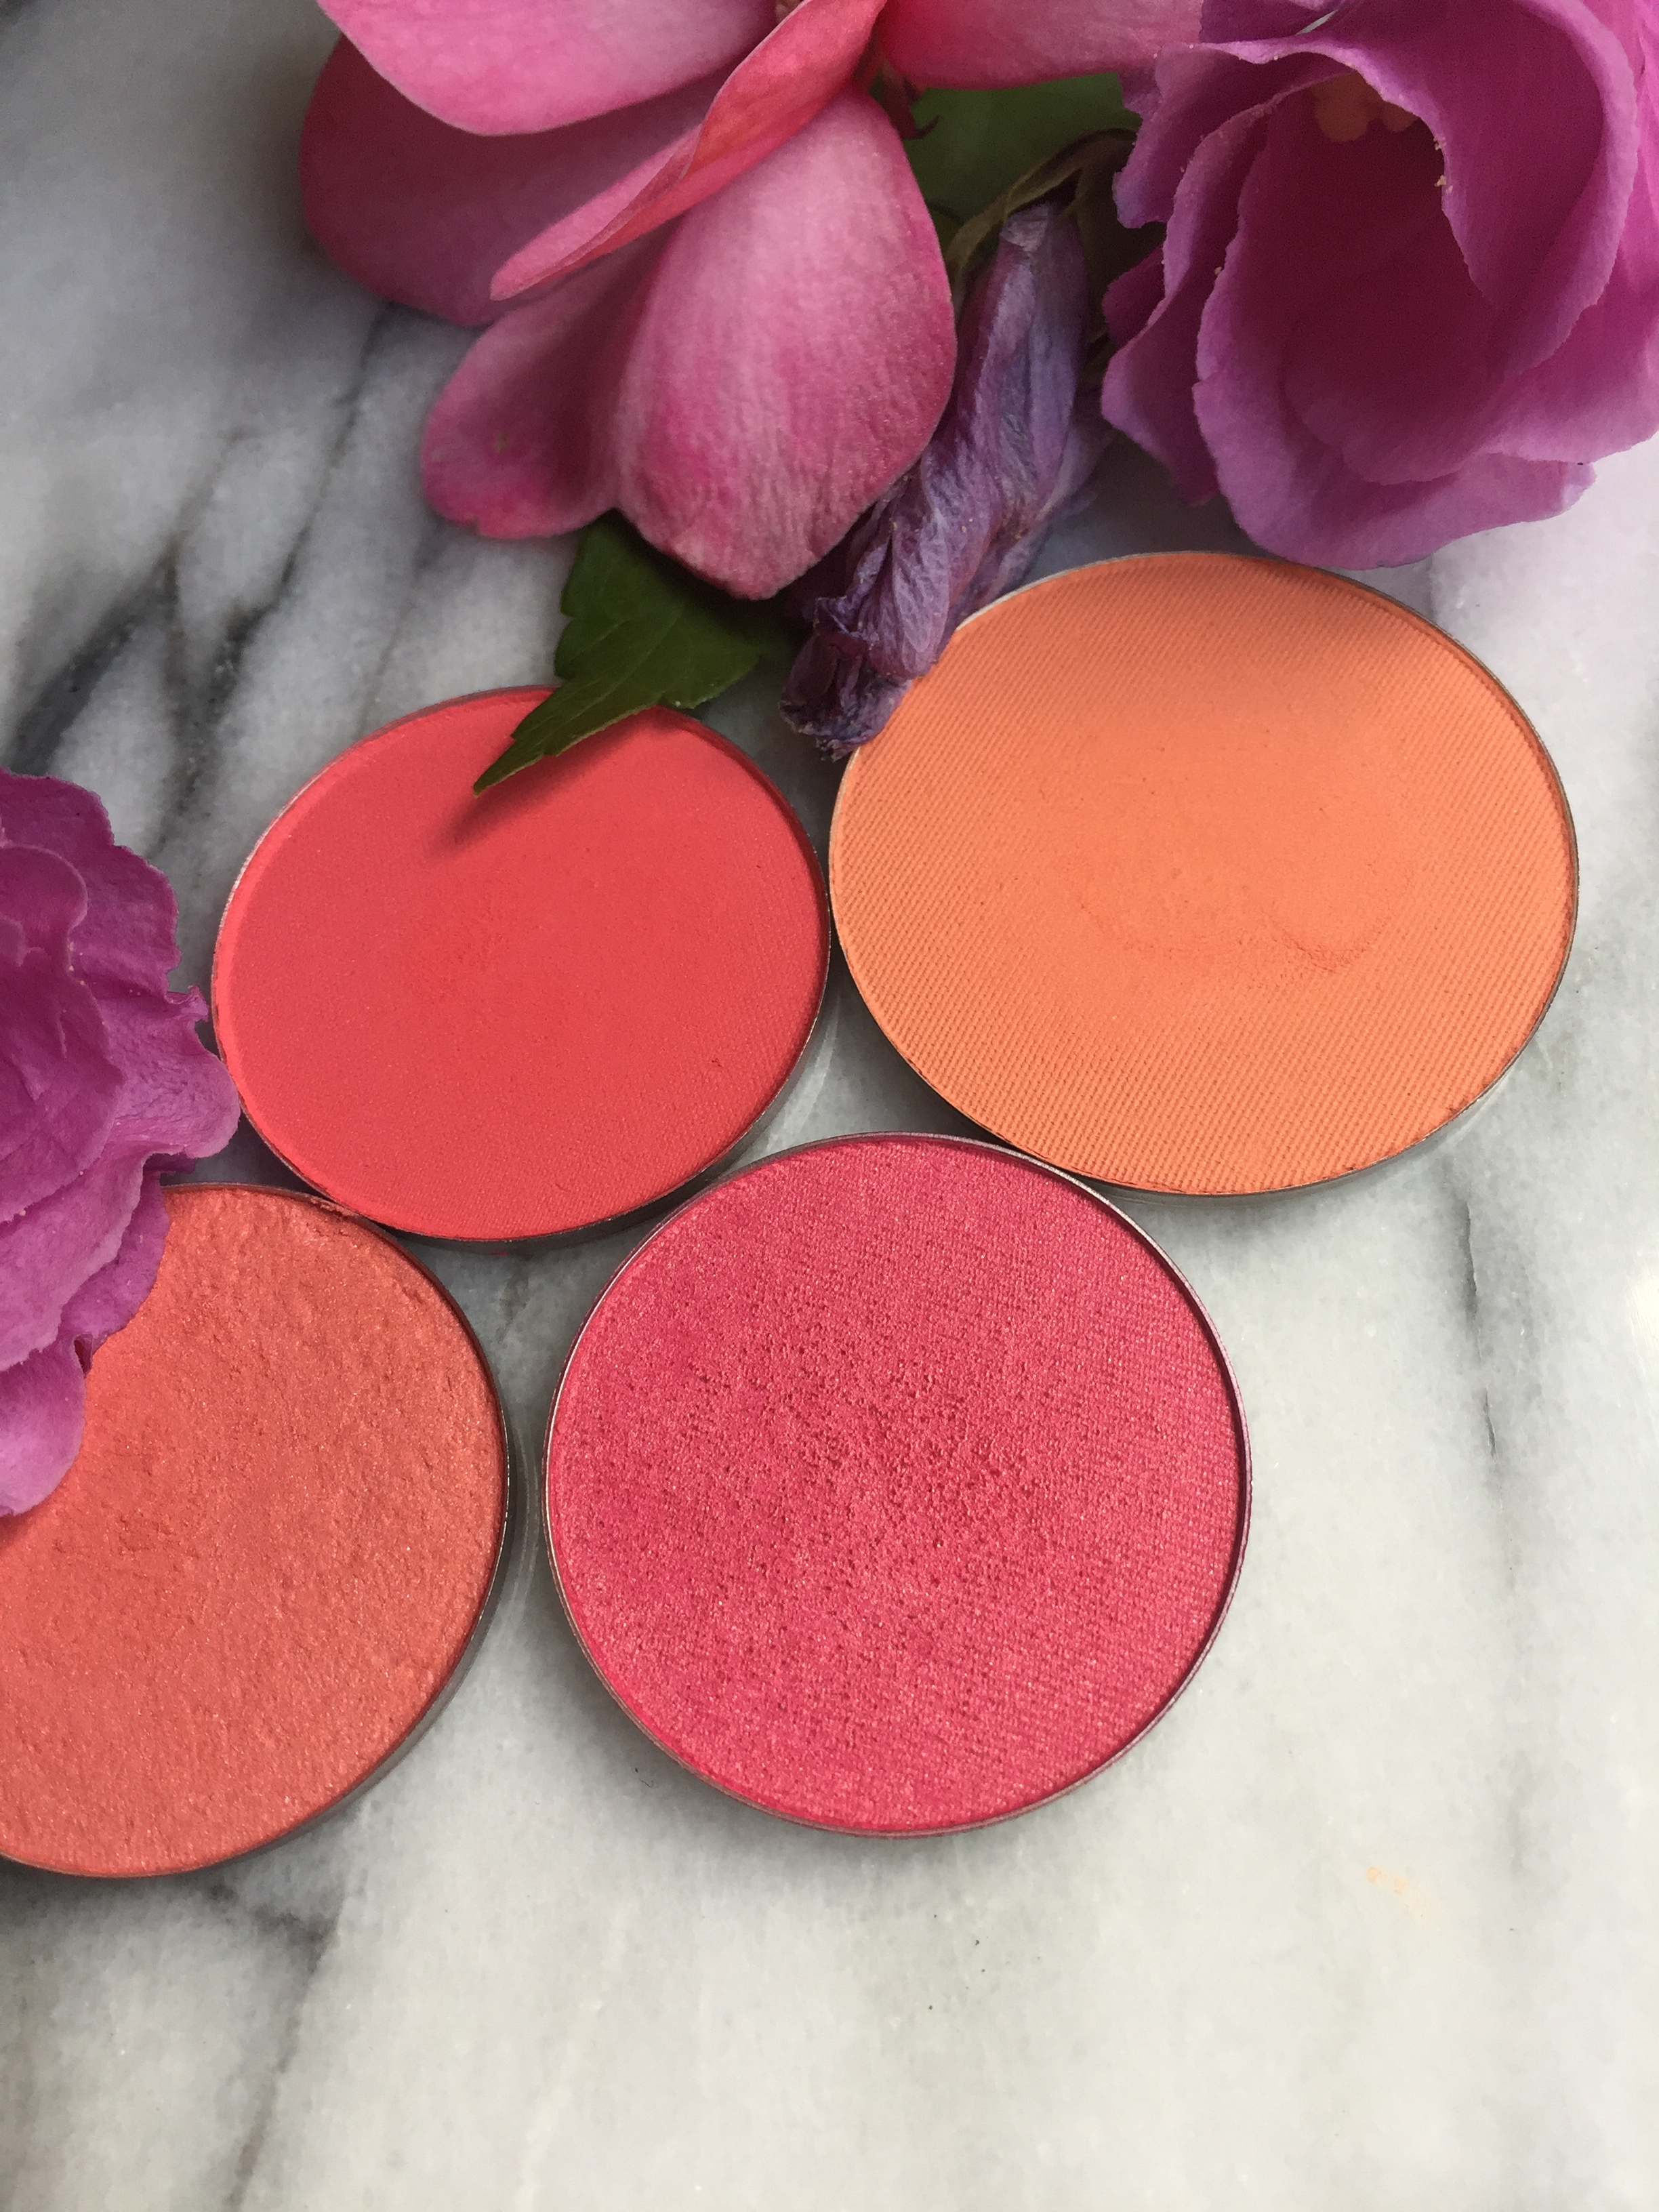 My favourite blushes for deep skin tones